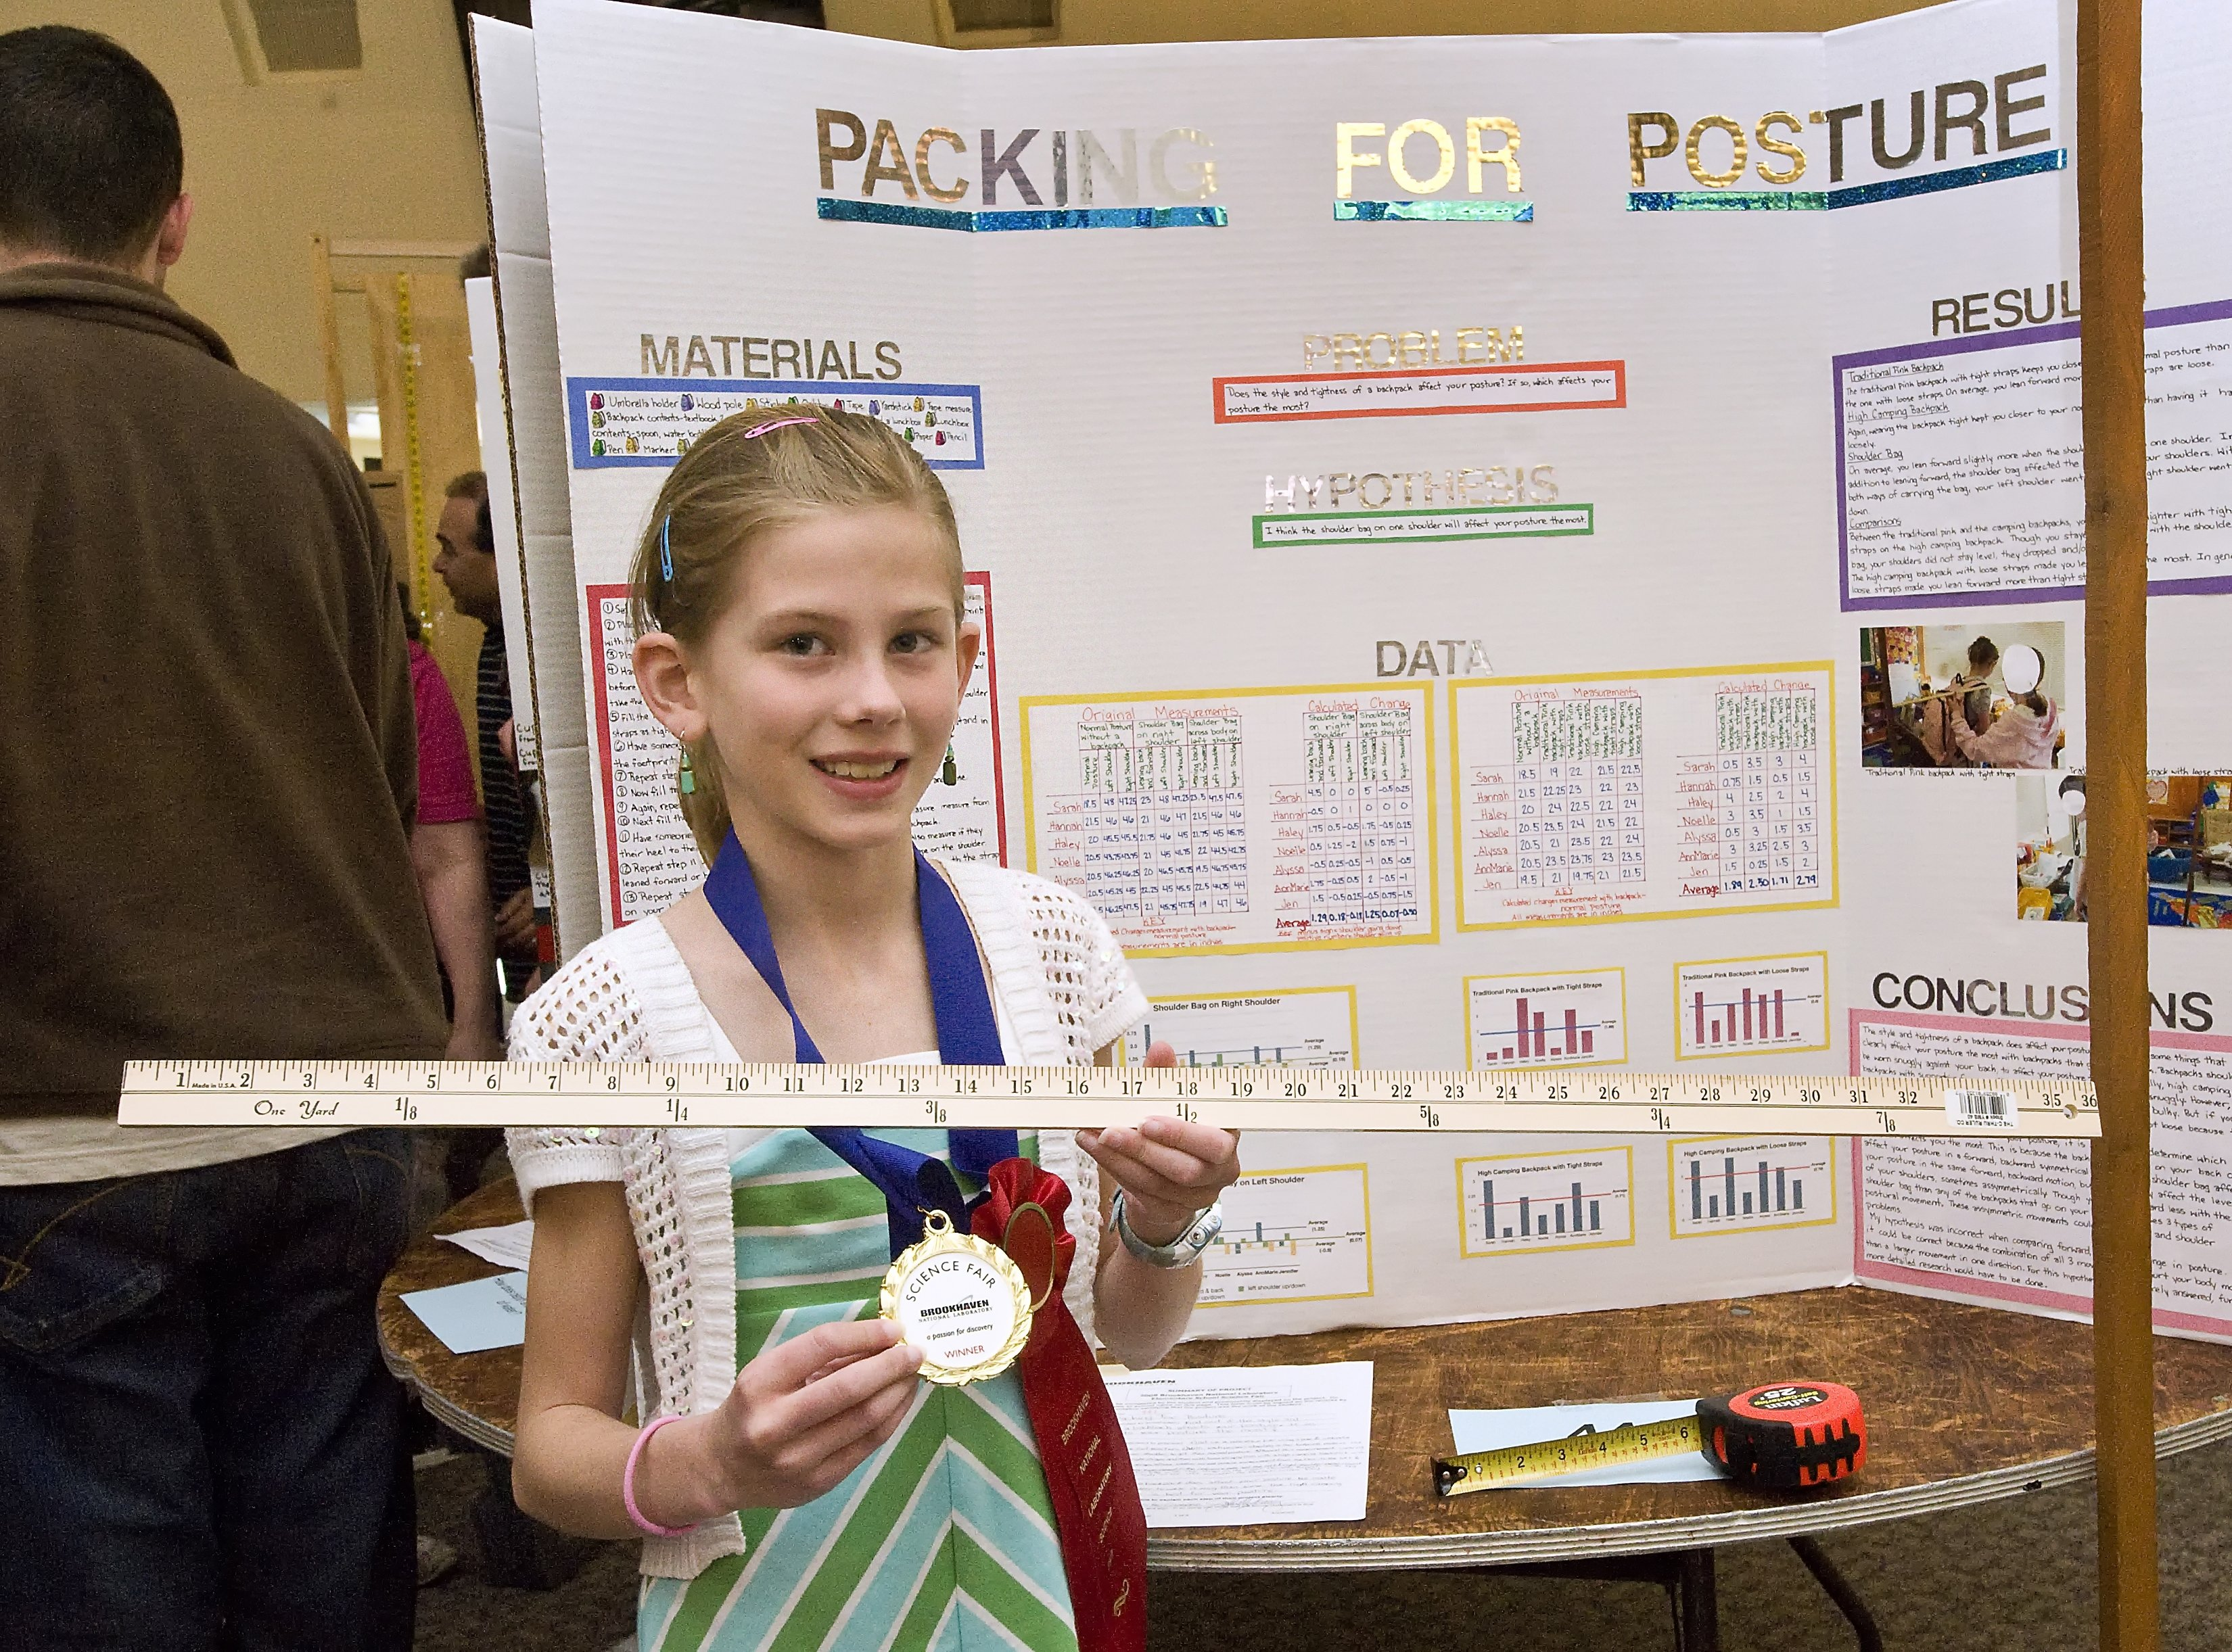 10 Stunning Science Fair Ideas For 4Th Grade captivating 4th grade science projects ideas magnets in from ant 10 2021